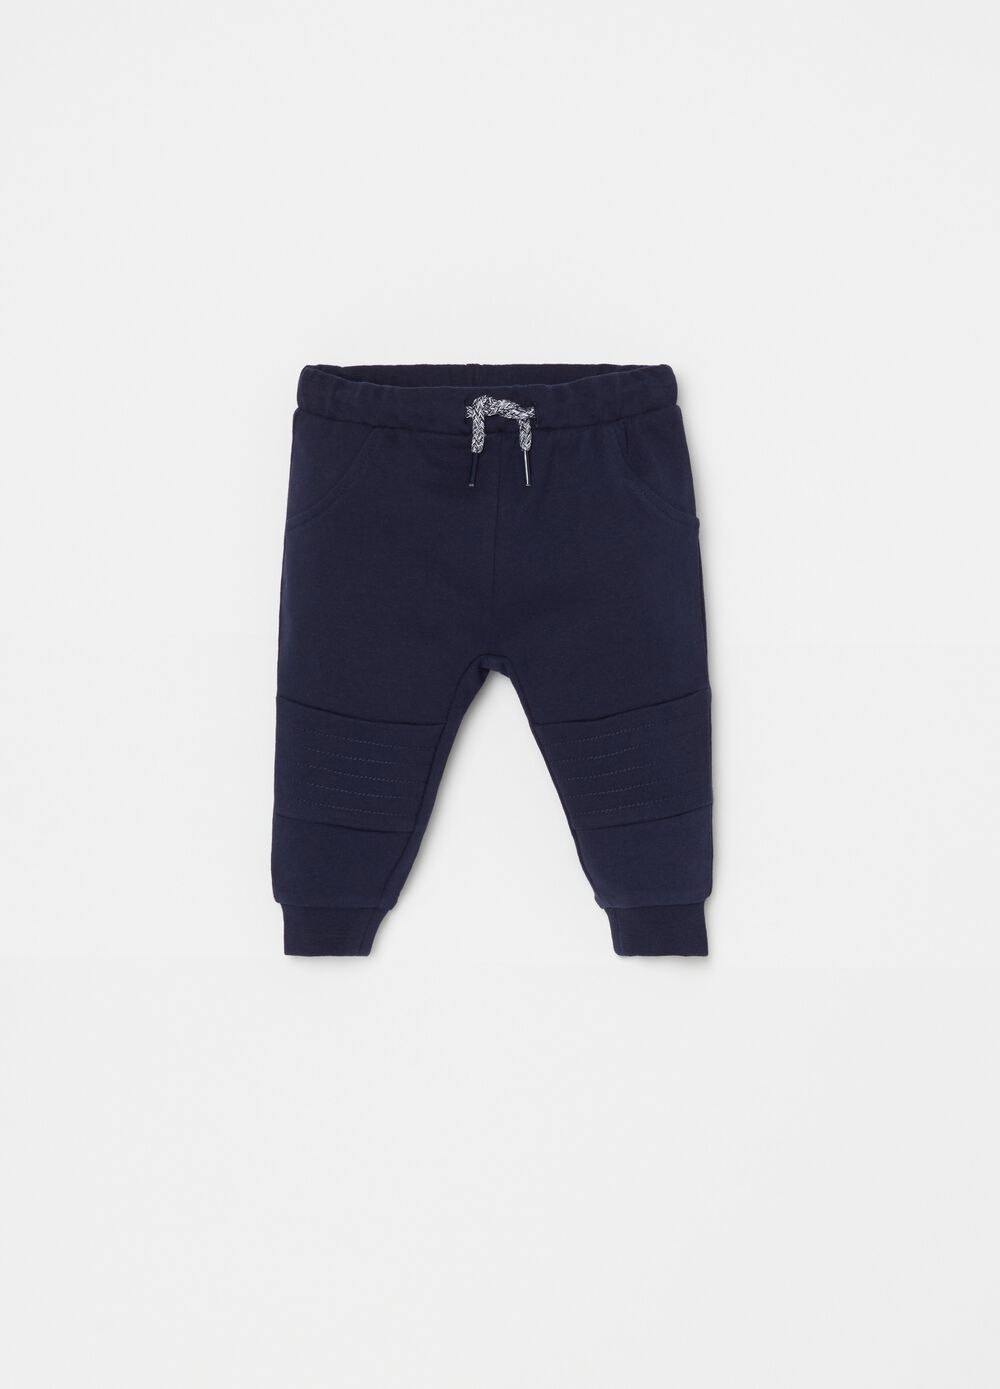 French terry organic cotton joggers